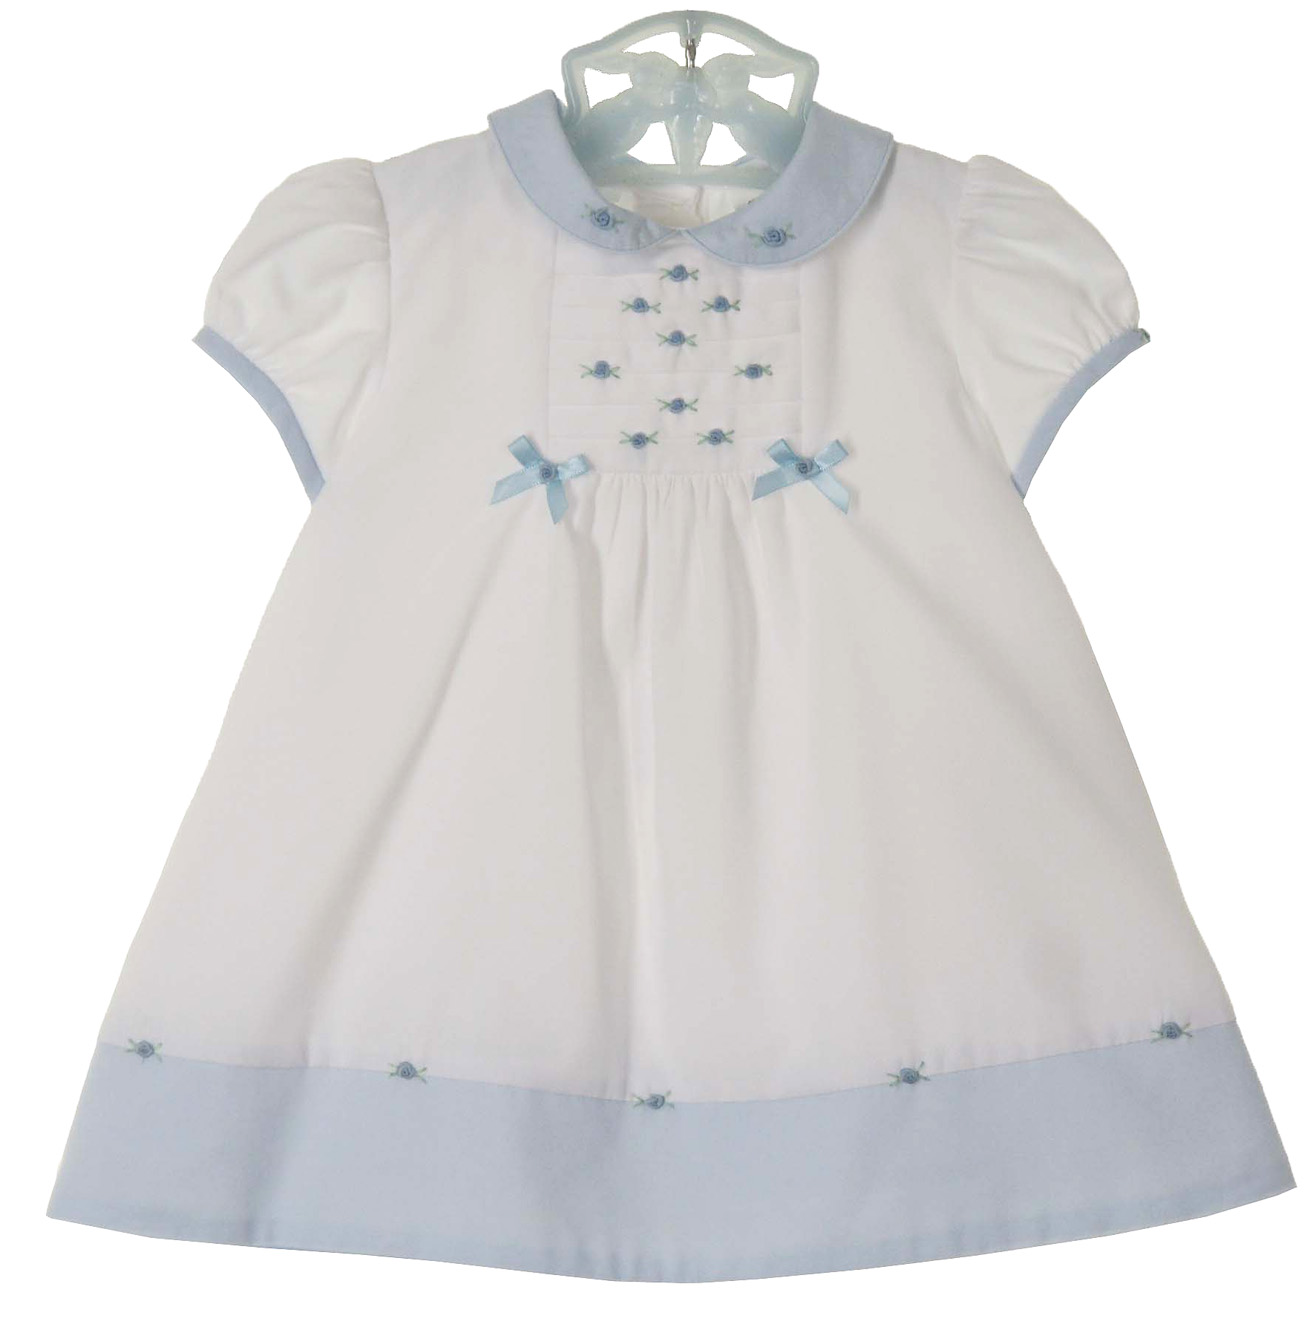 Sarah Louise Vintage Style Dress Blue And White Dress With Rosebuds